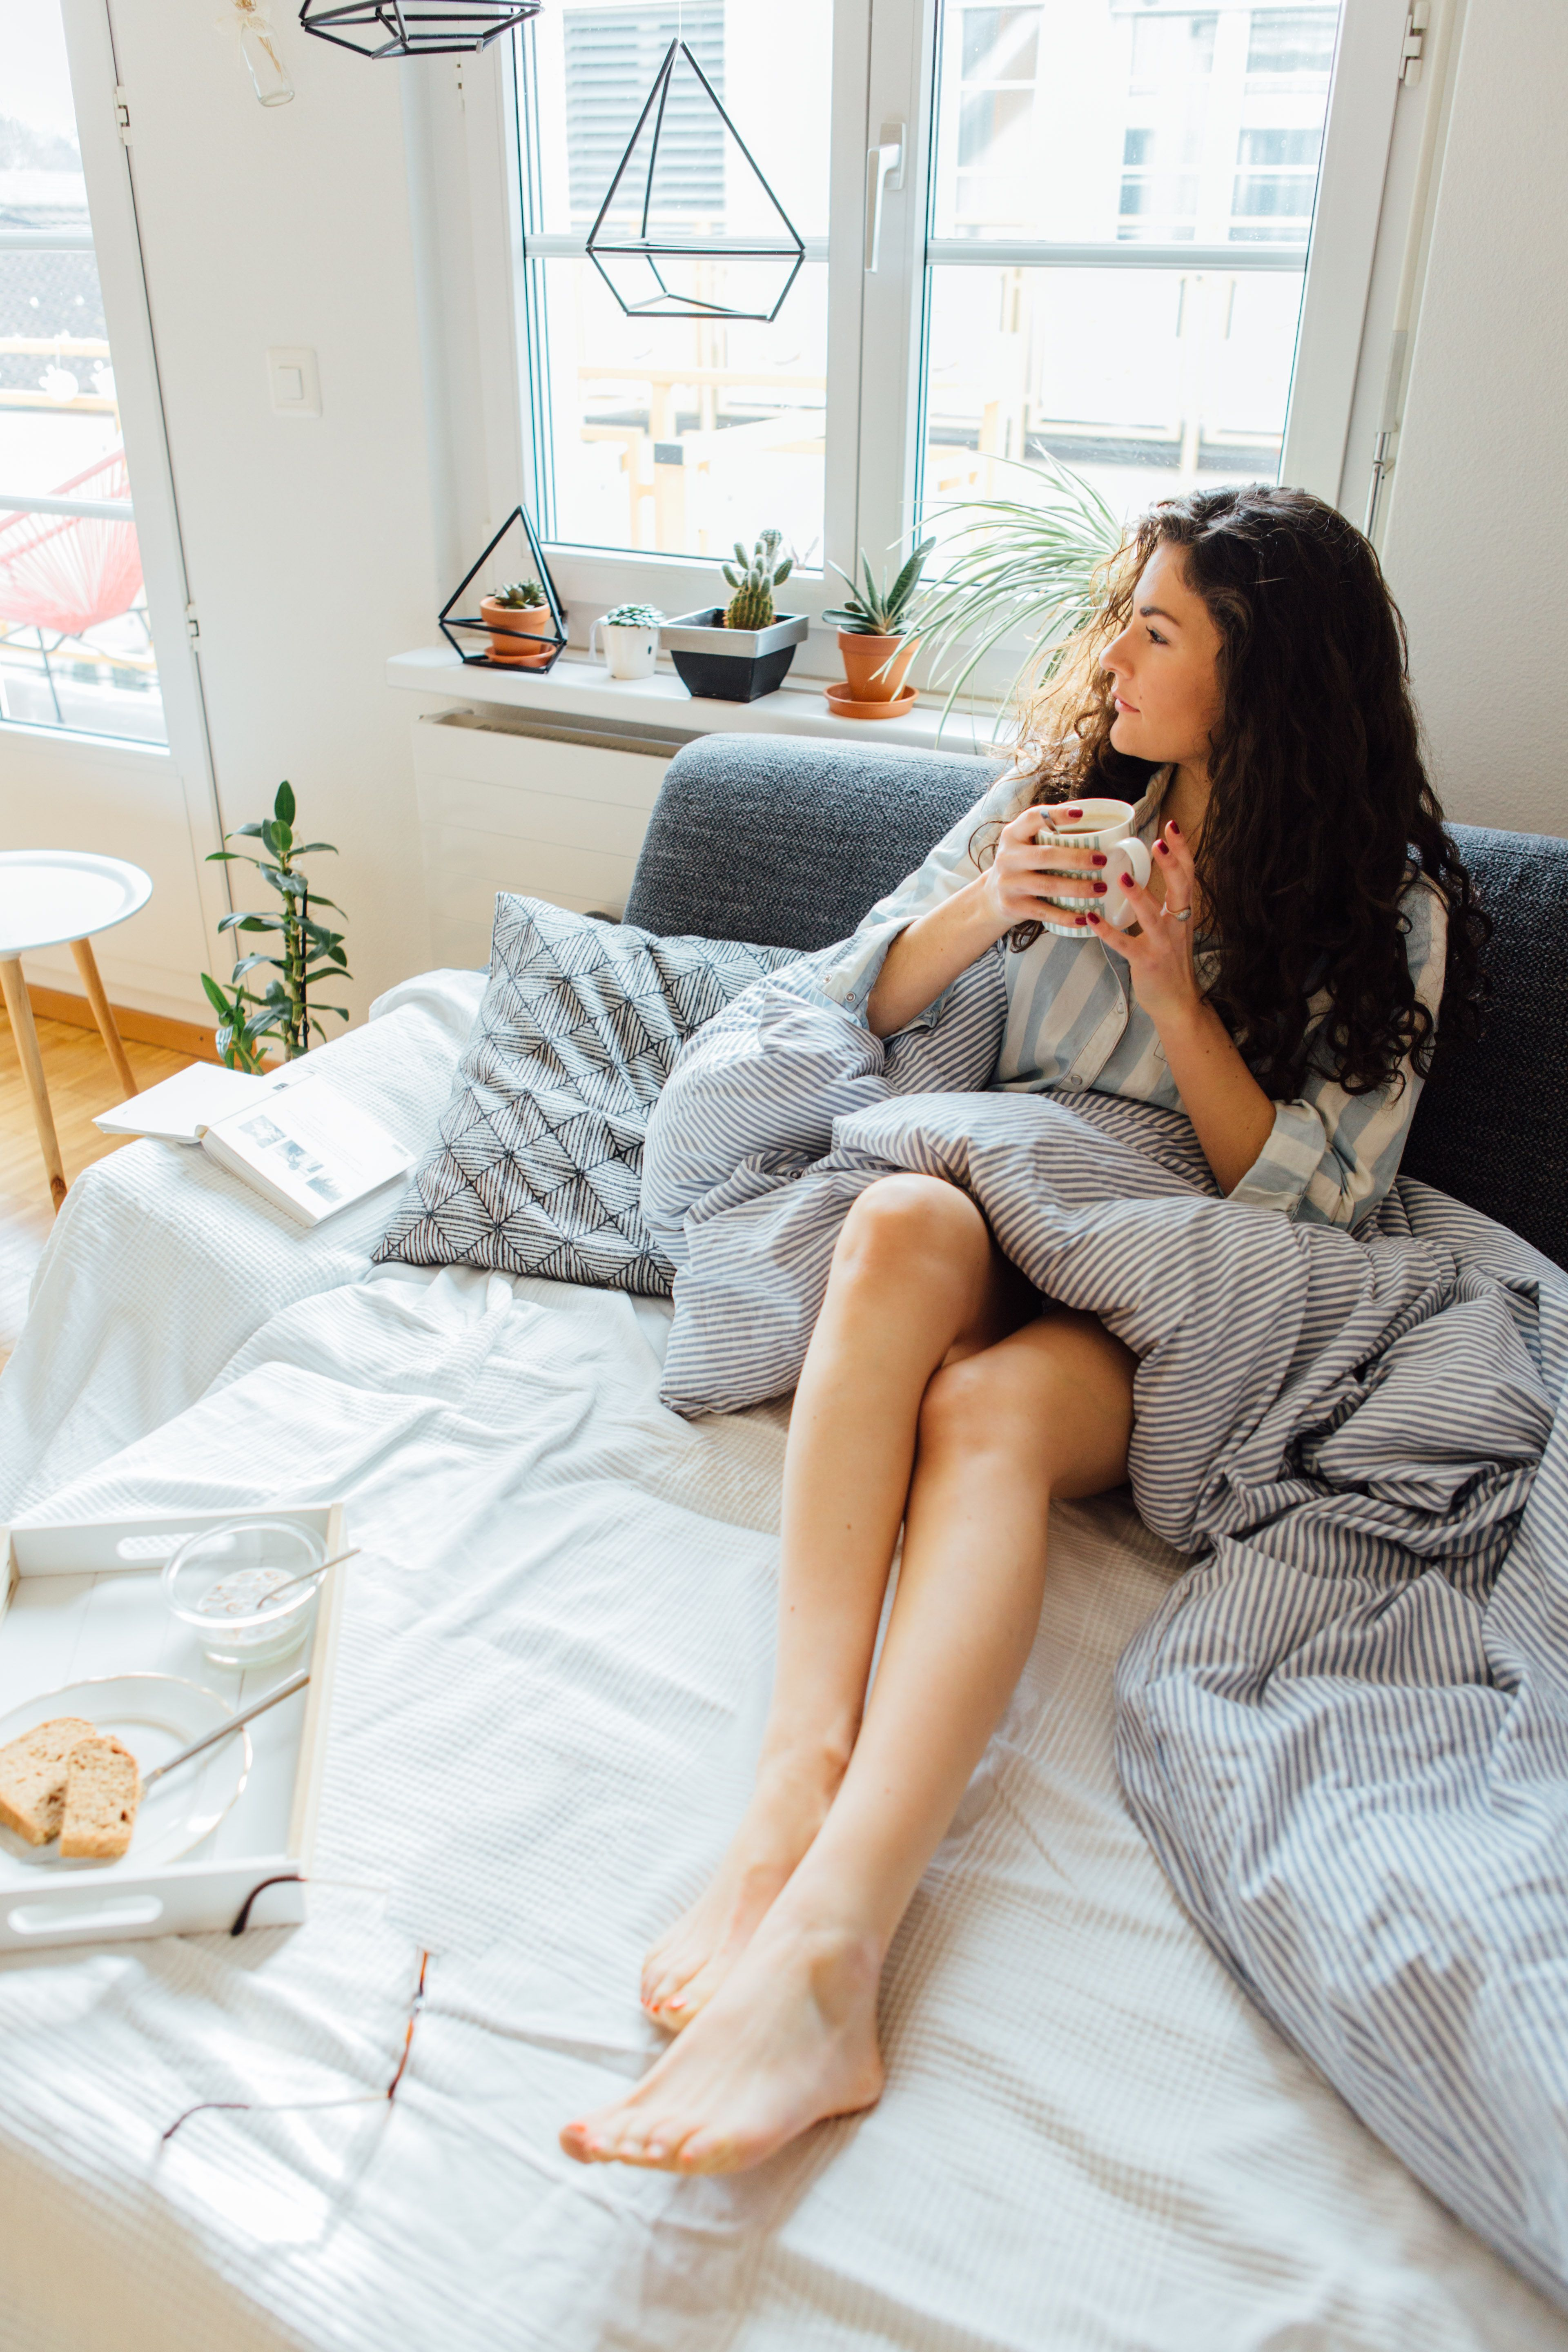 High Angle View Of Thoughtful Young Woman Looking Away While Having Coffee On Bed At Home